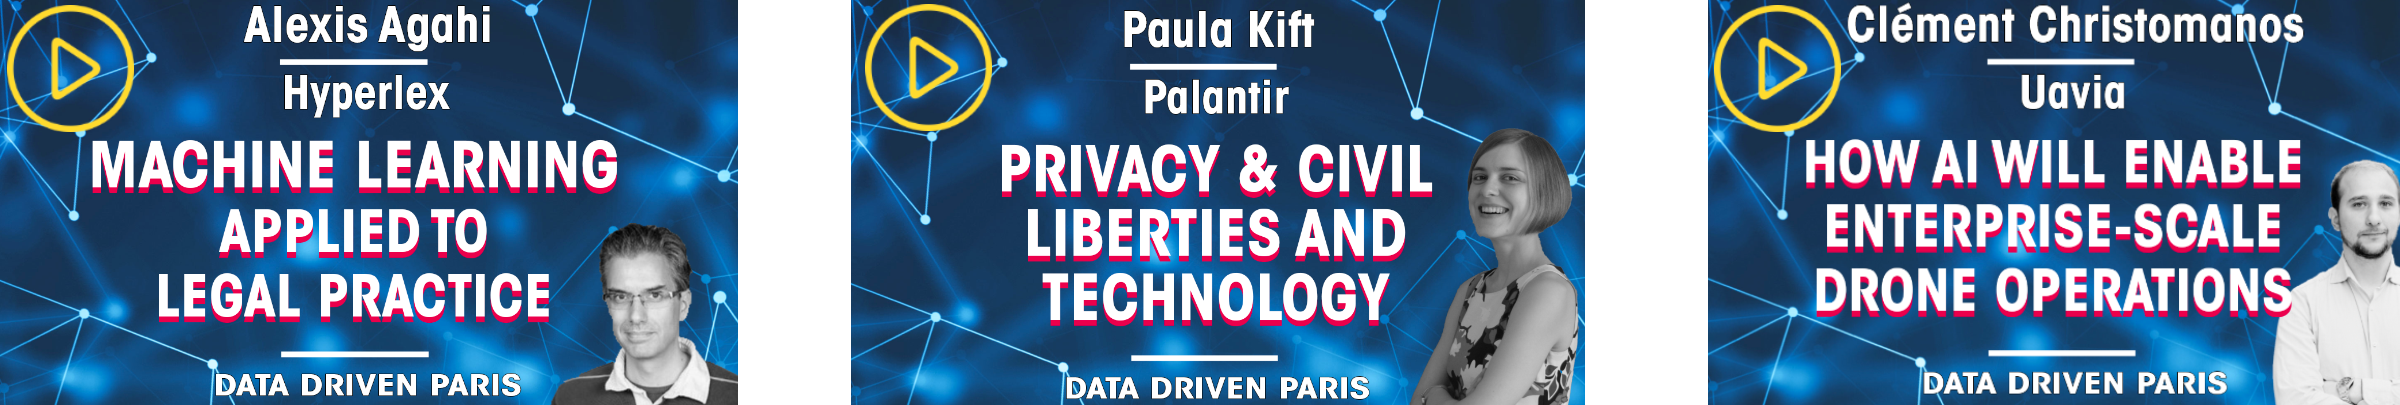 bannière Data Driven Paris